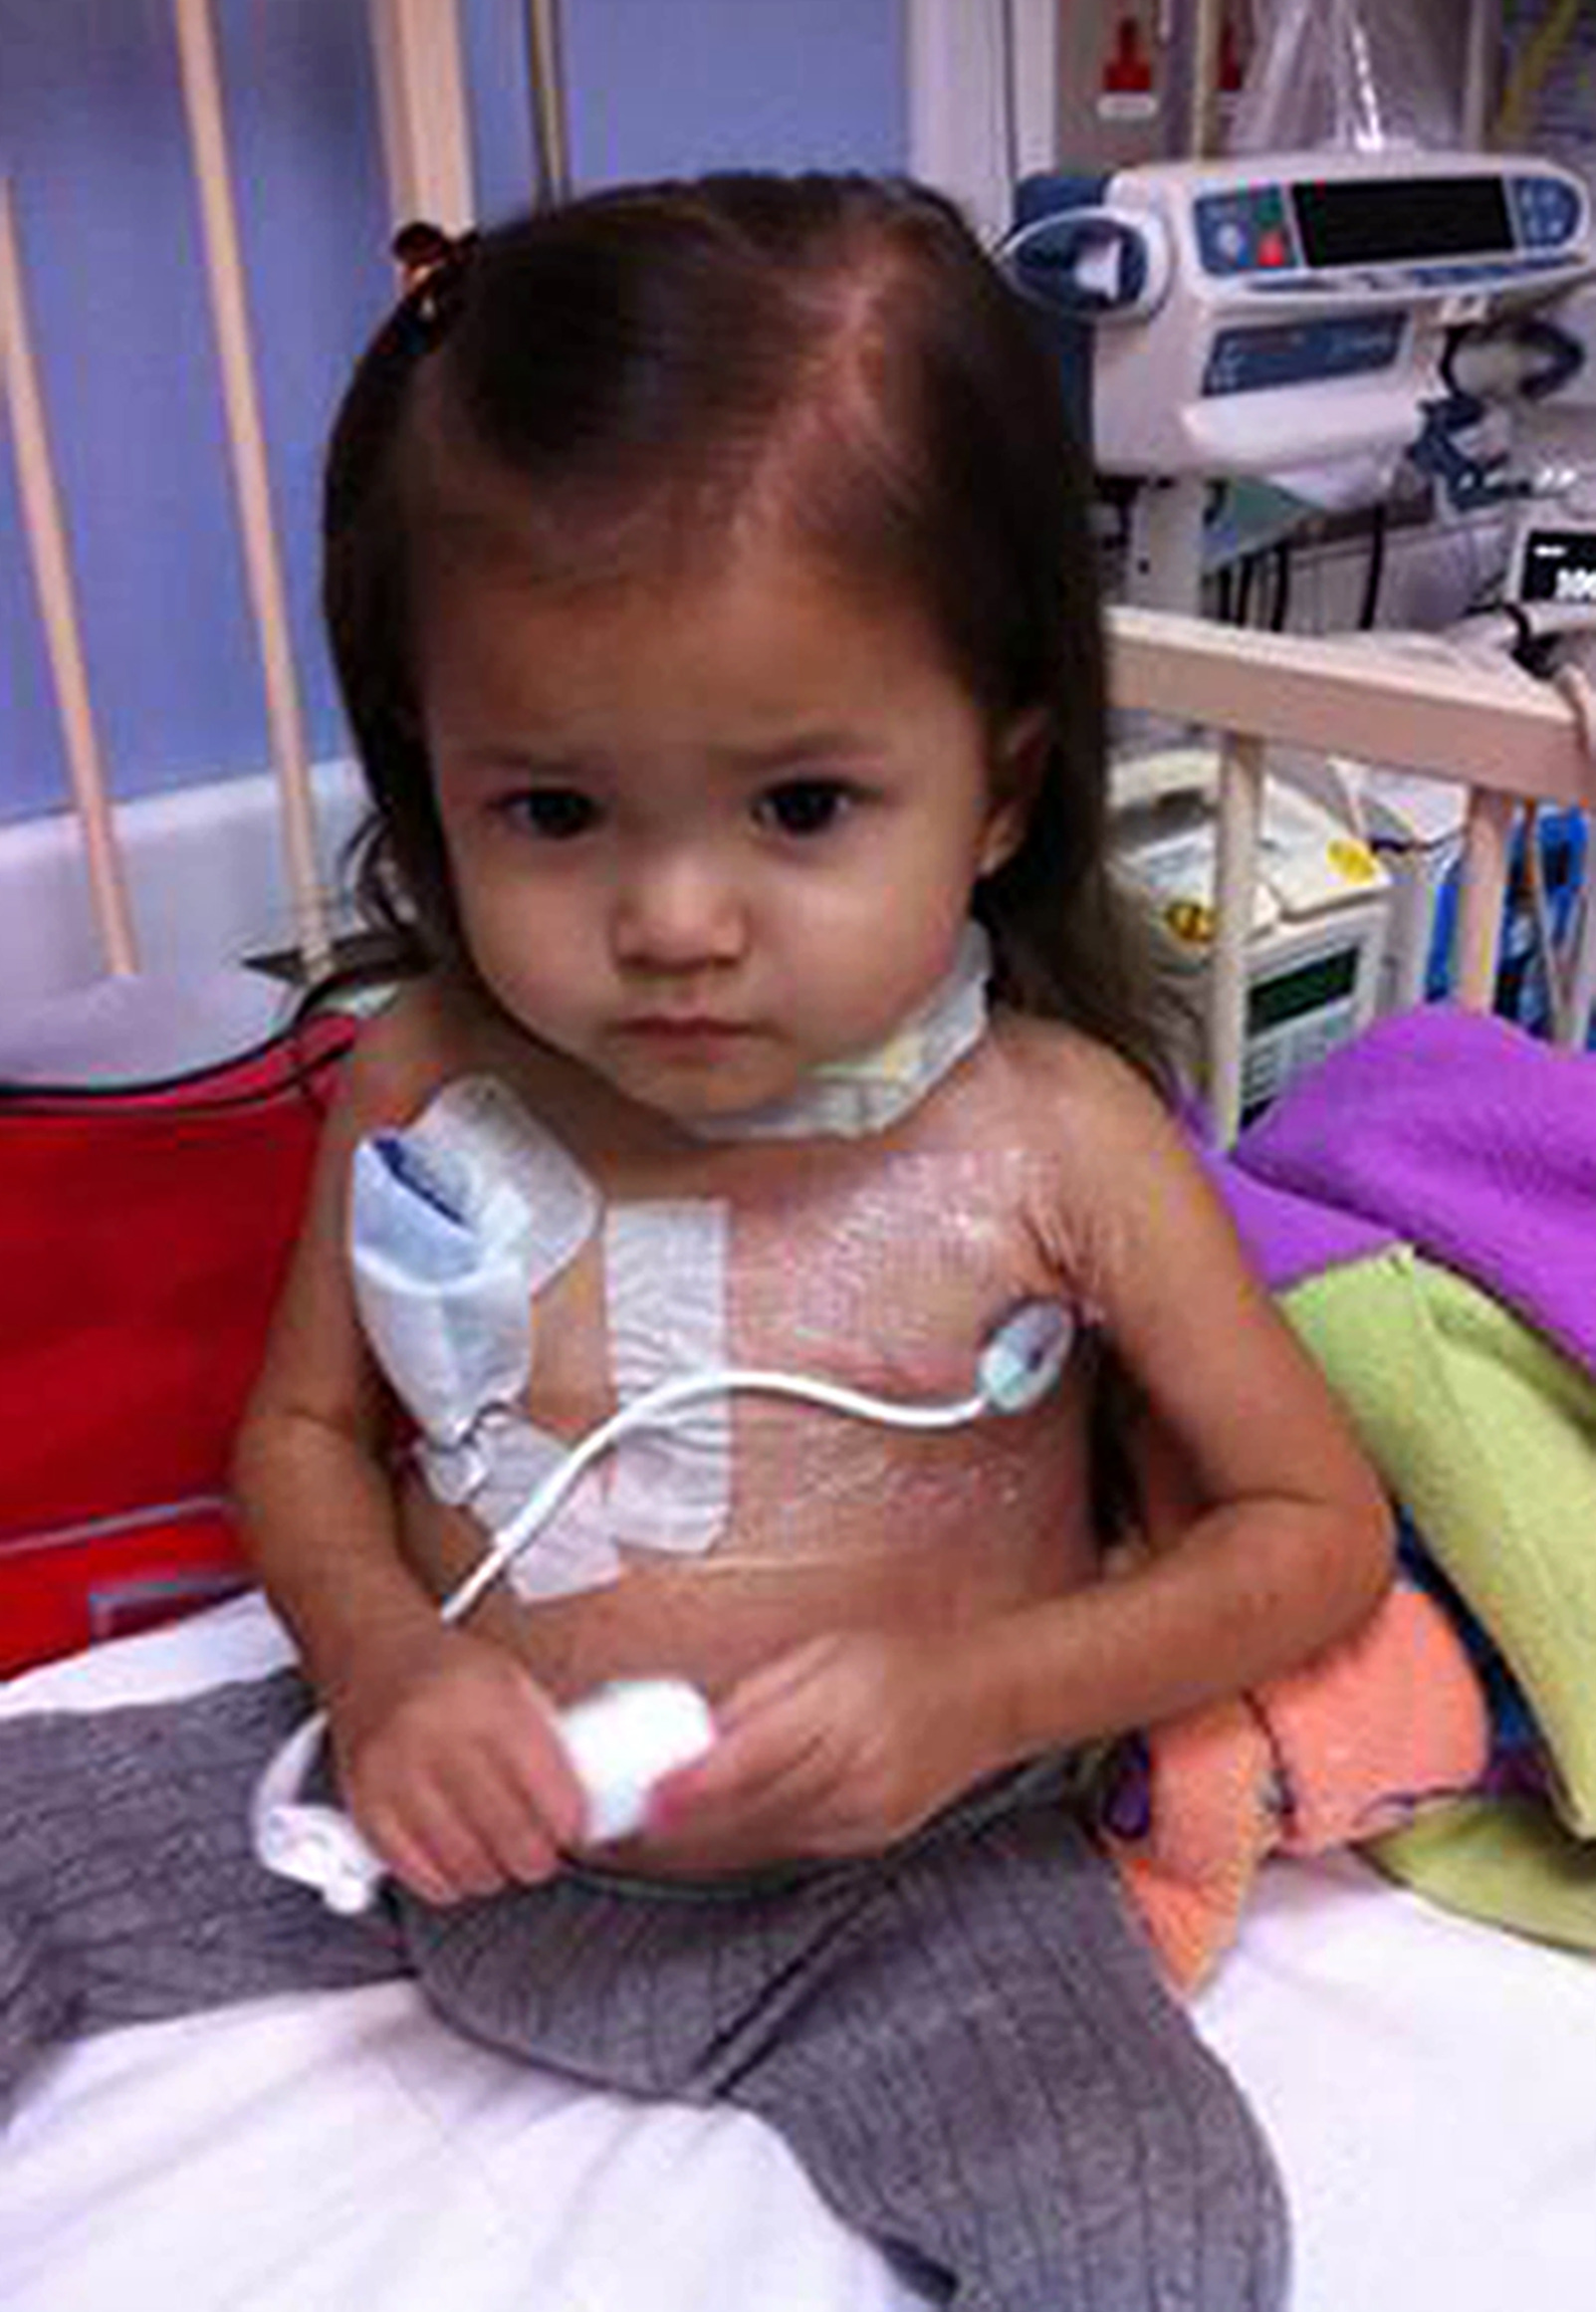 Sign up as a bone marrow donor and help change a little girl's life